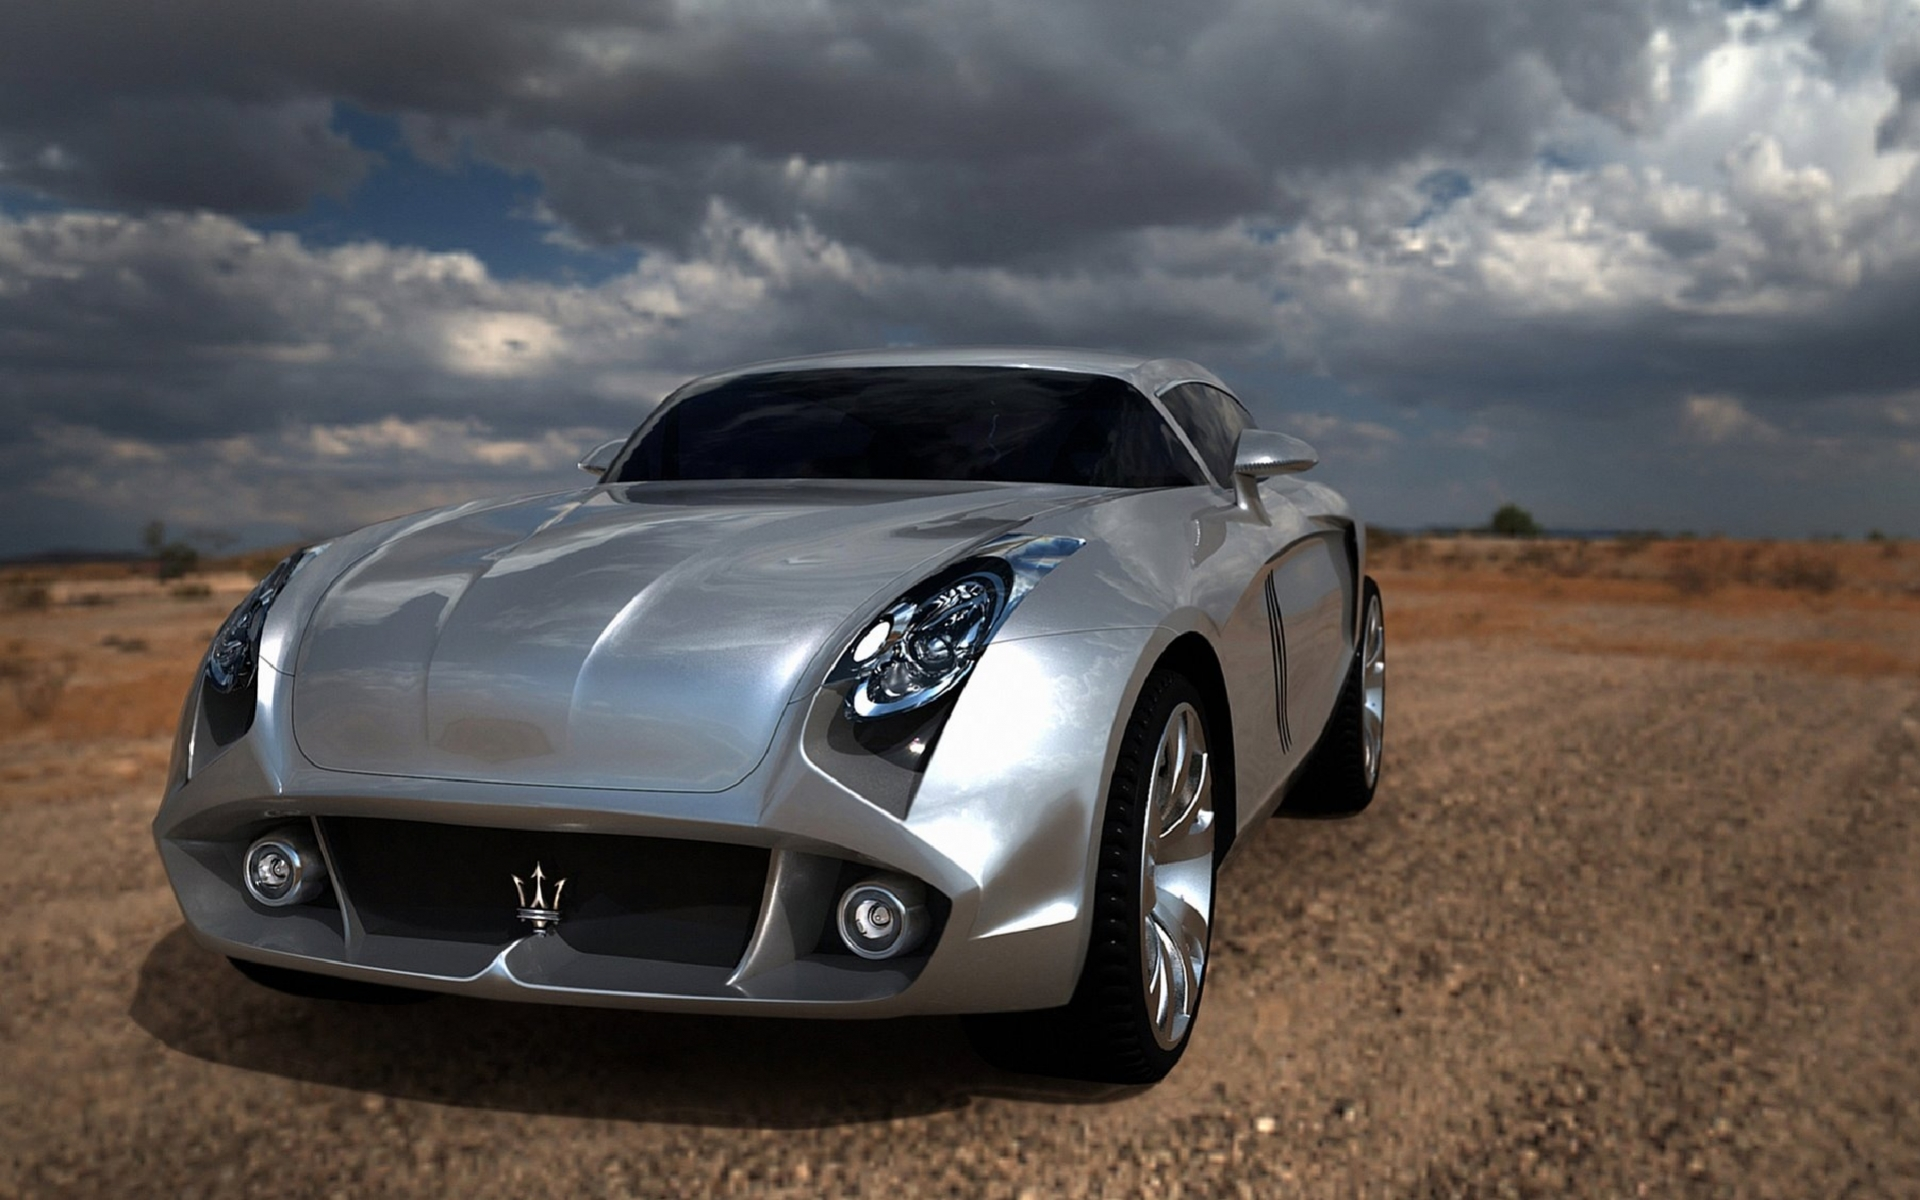 46564 download wallpaper Transport, Auto, Maserati screensavers and pictures for free